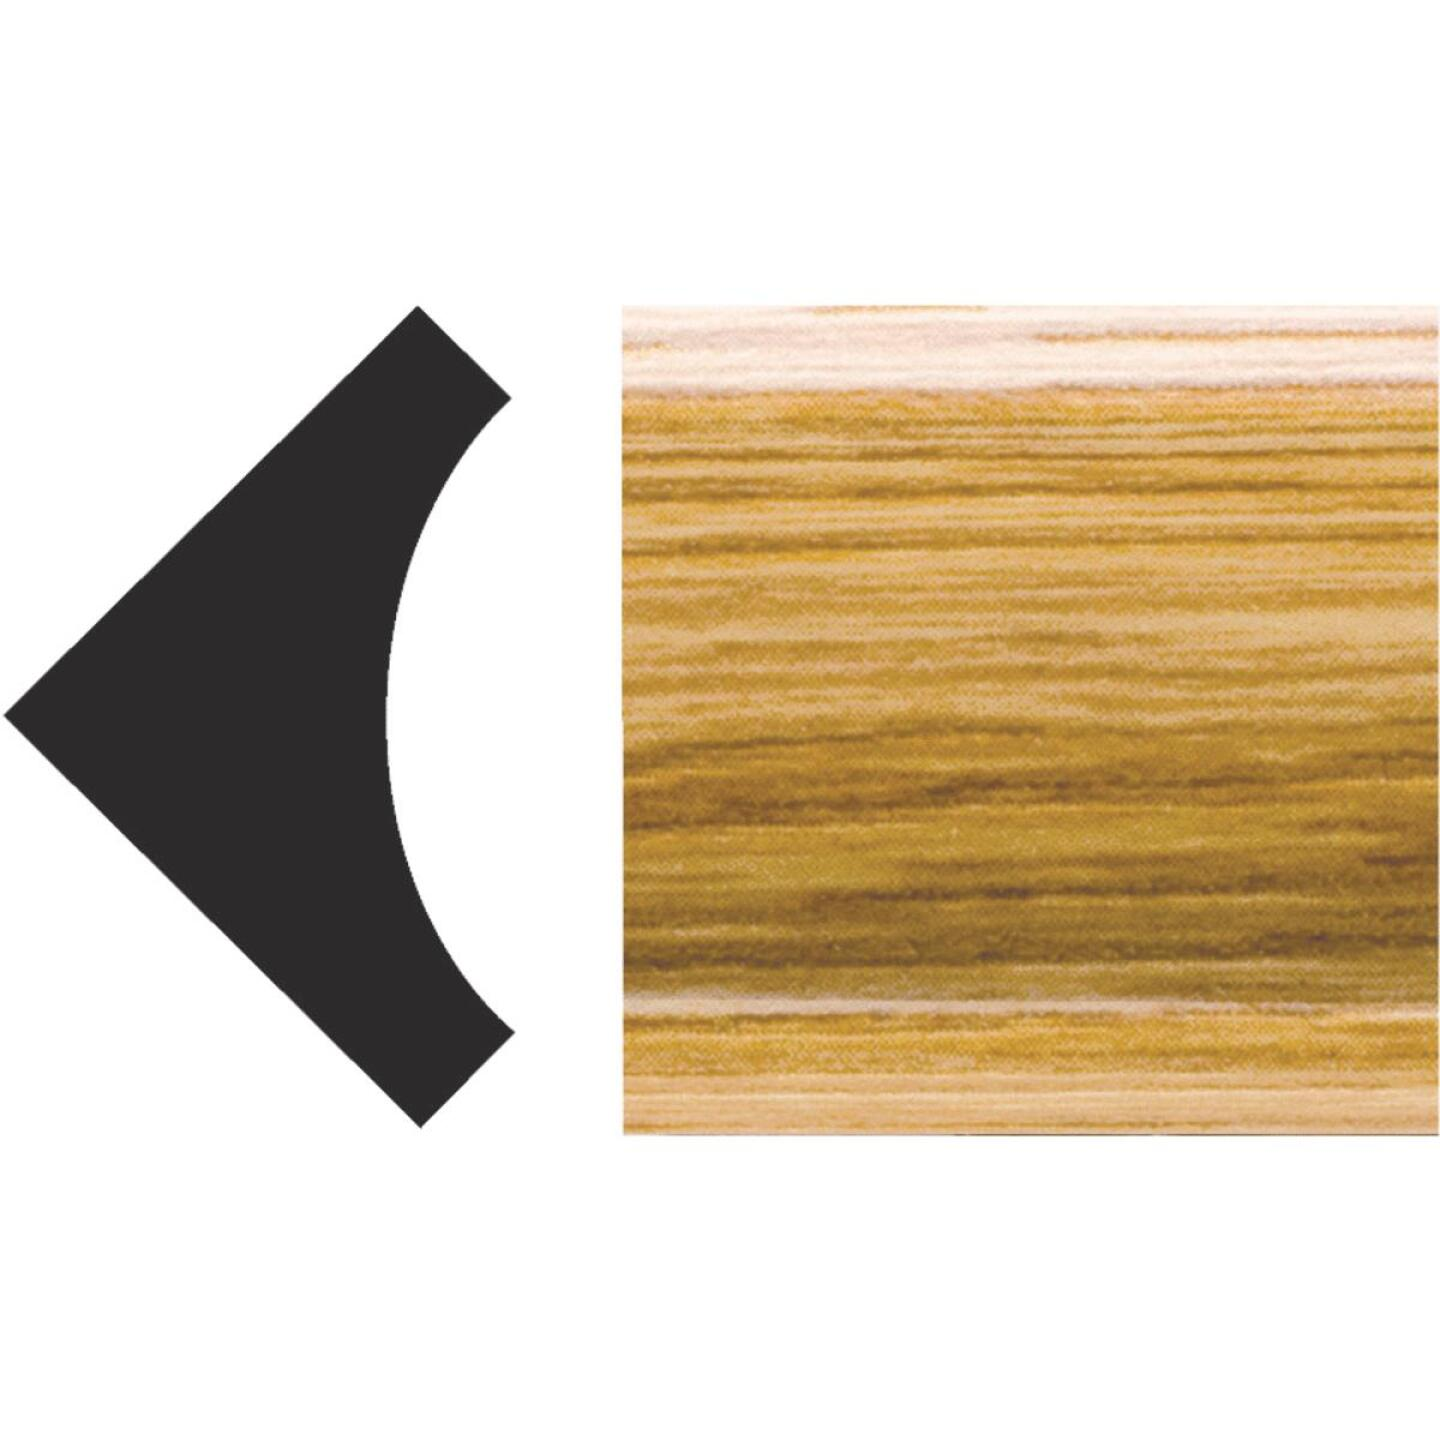 Royal 3/4 In. x 3/4 In. x 8 Ft. Imperial Oak PVC Interior Inside Corner Molding Image 1